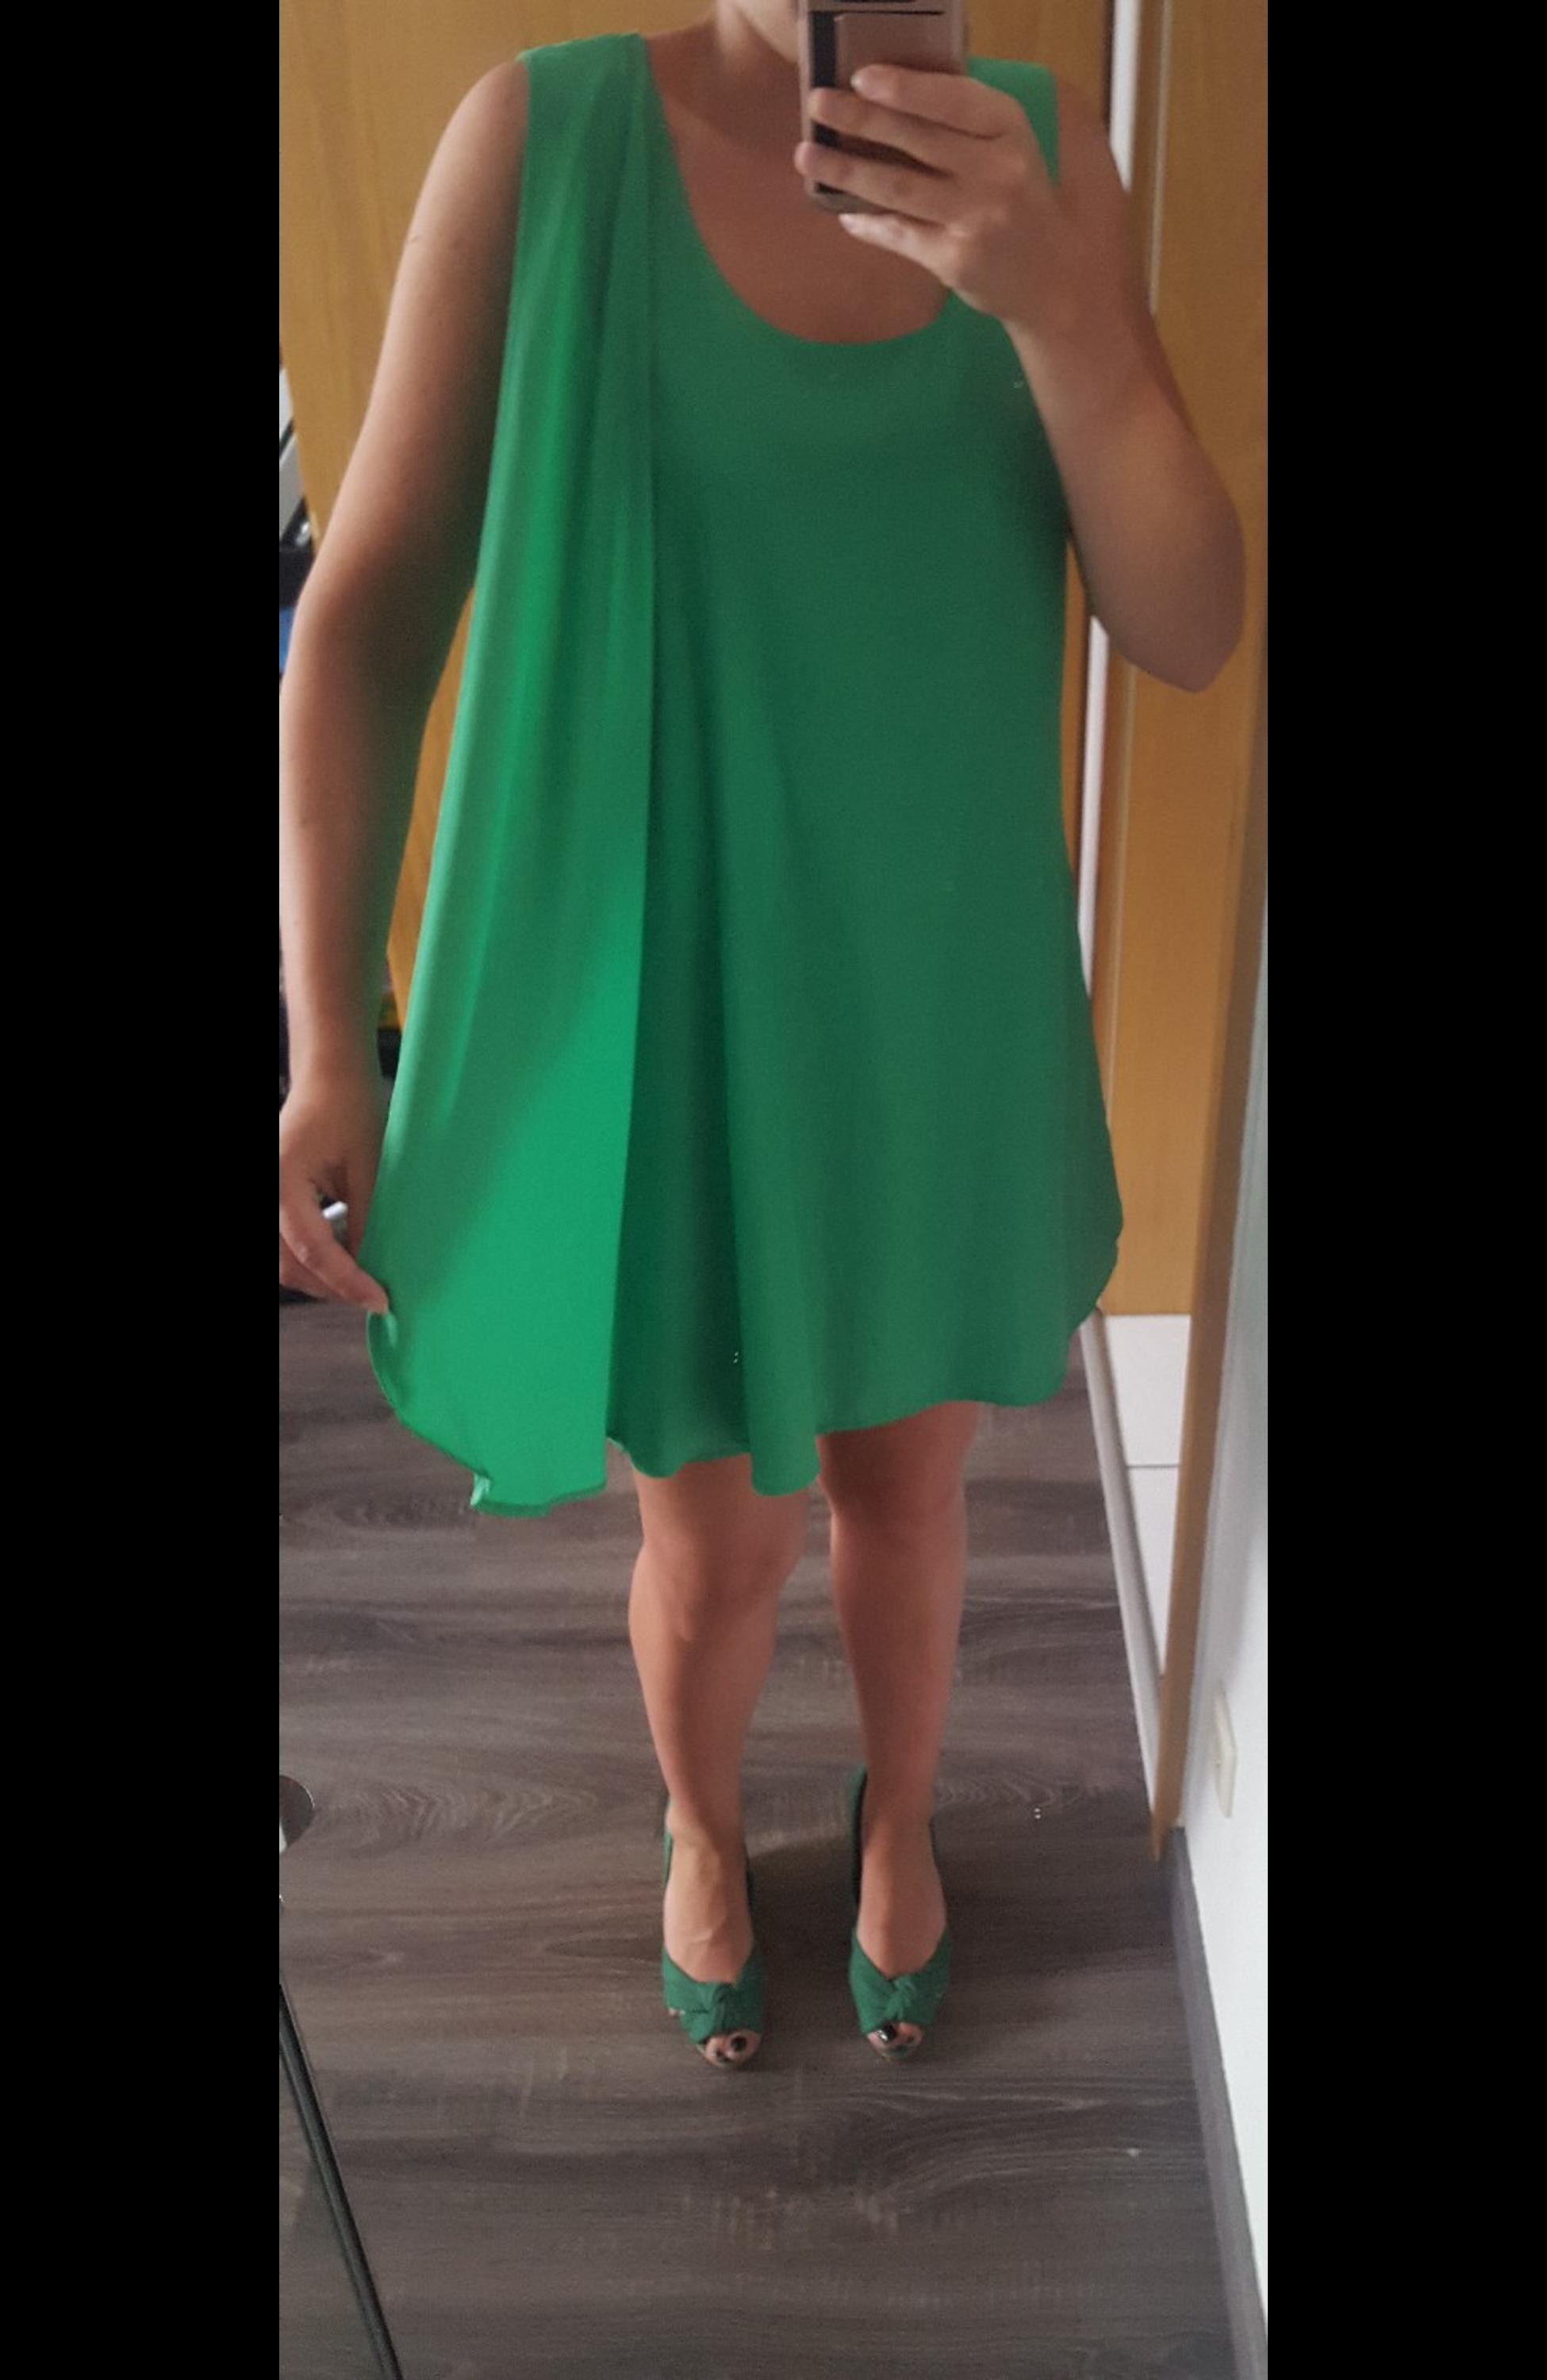 kleid / schuhe / armband / outfit